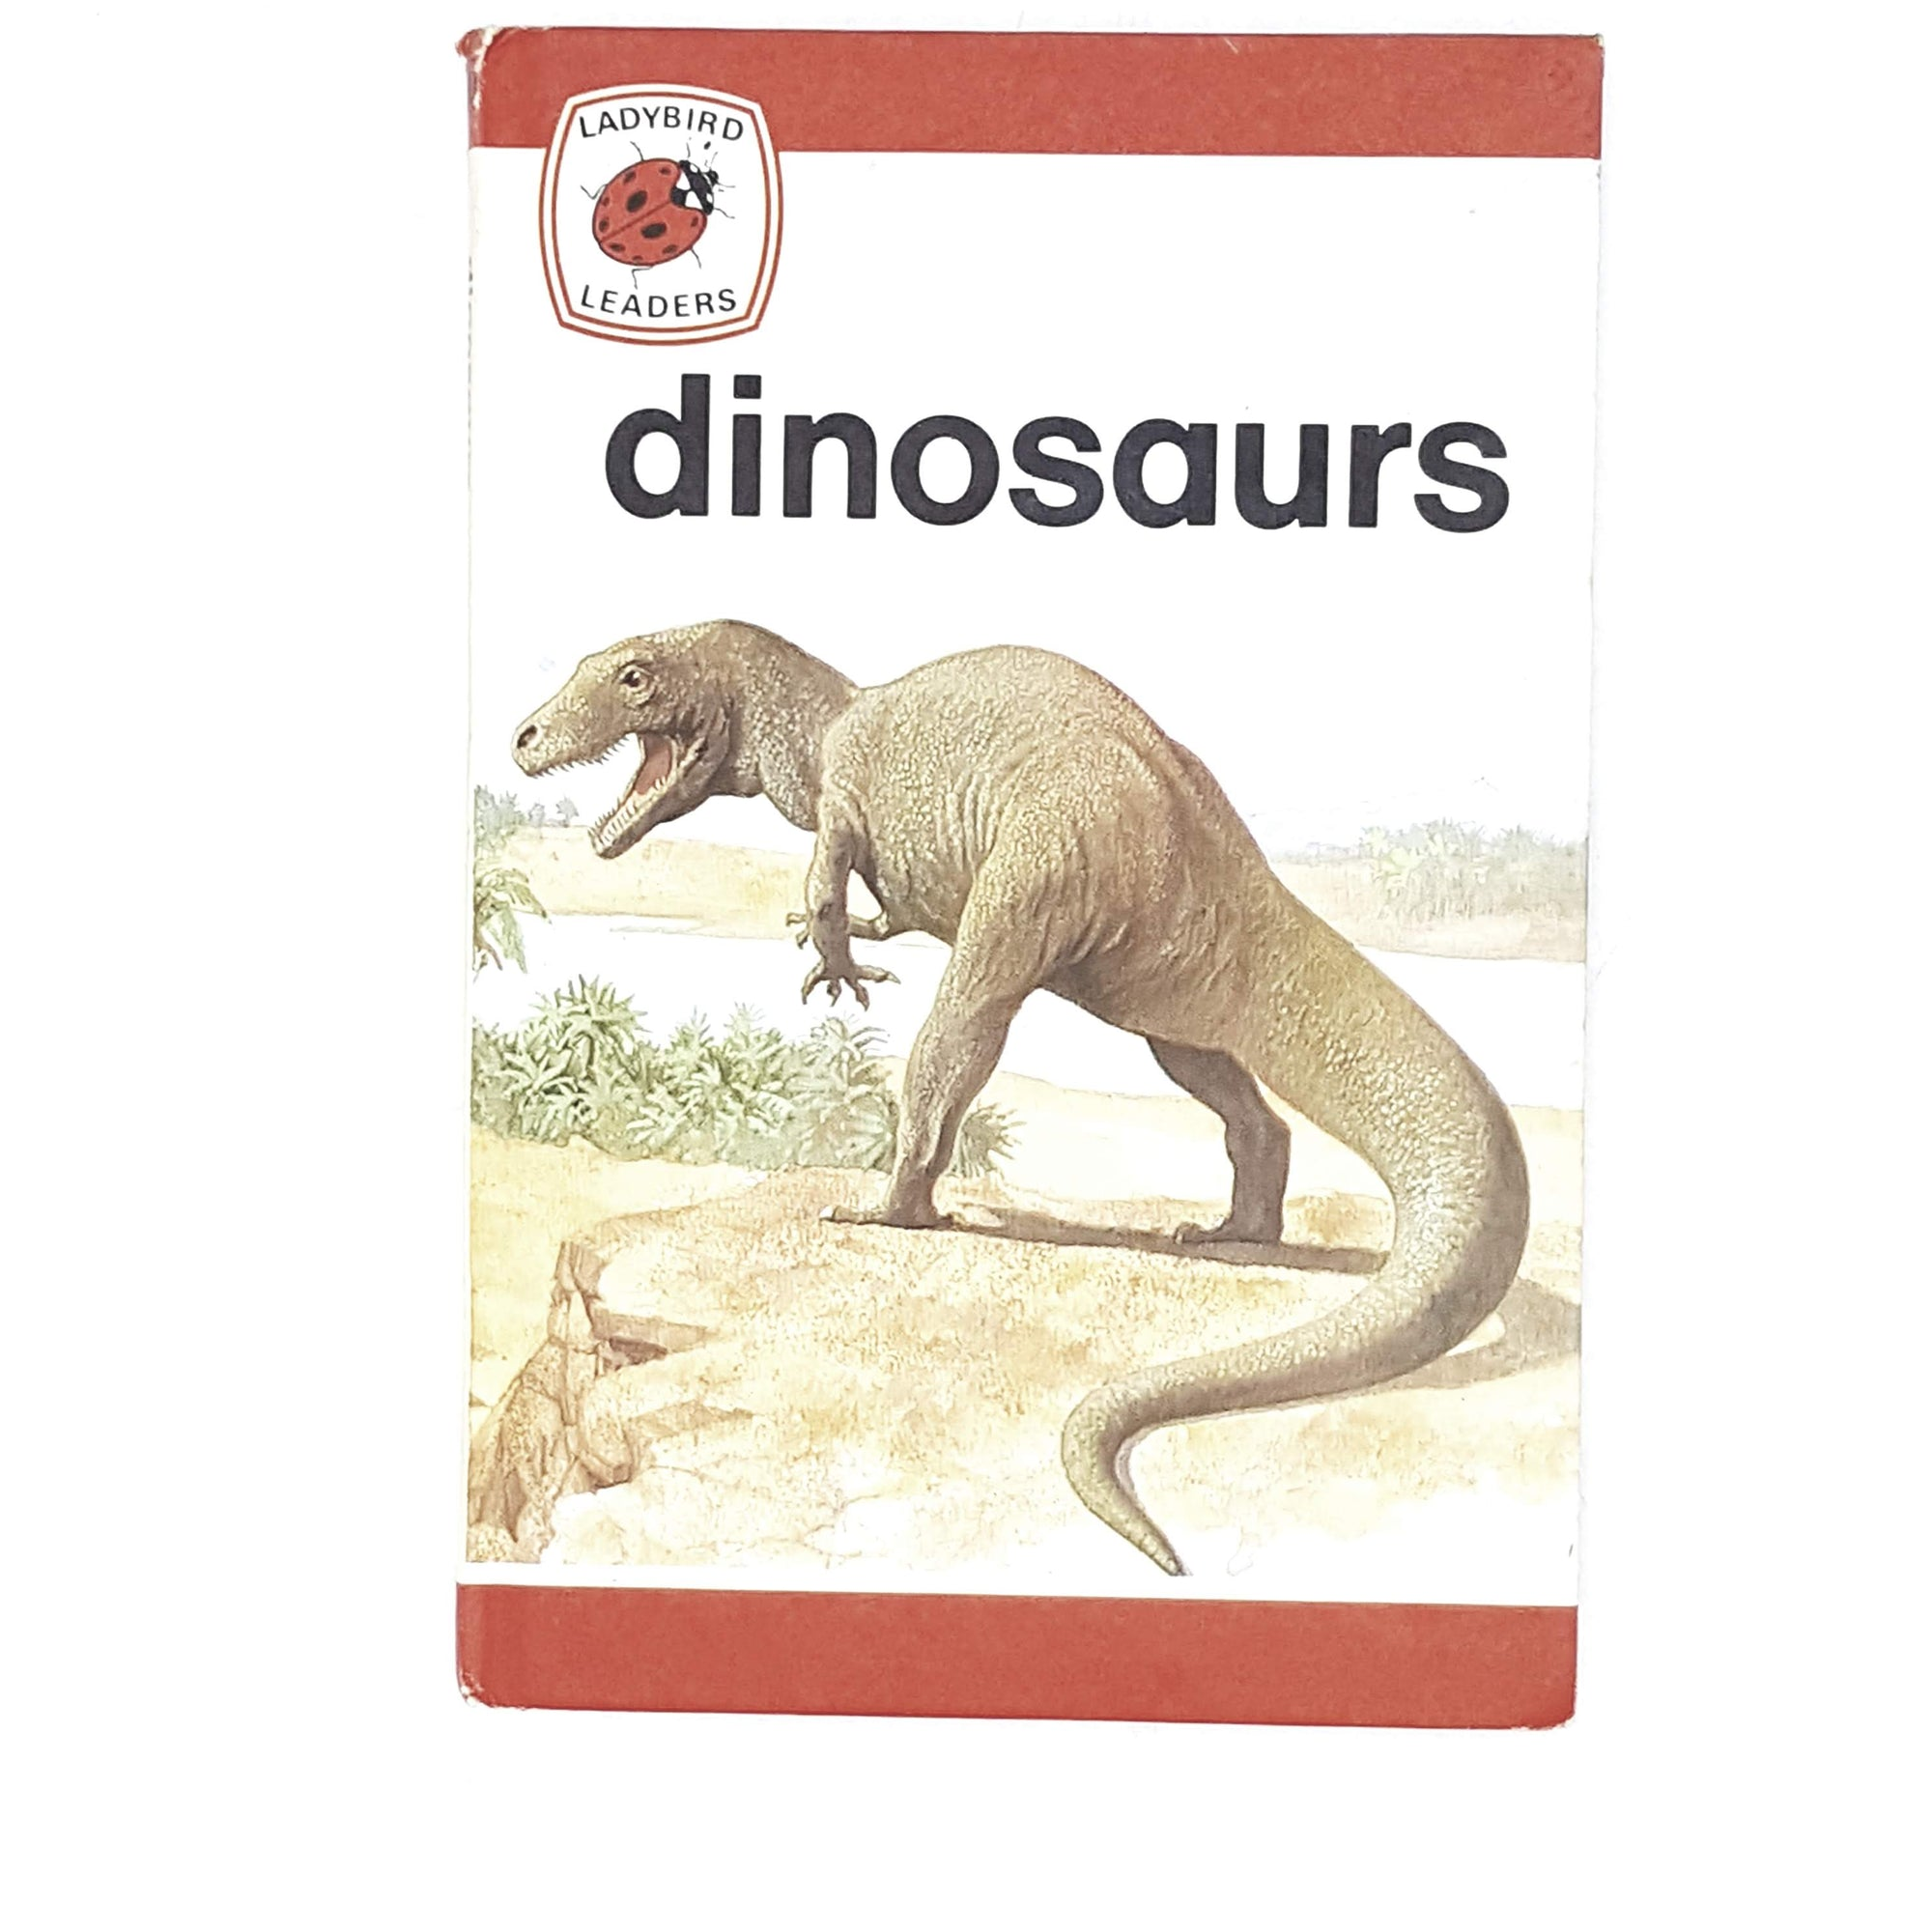 ladybird-leaders-dinosaurs-1974-country-house-library